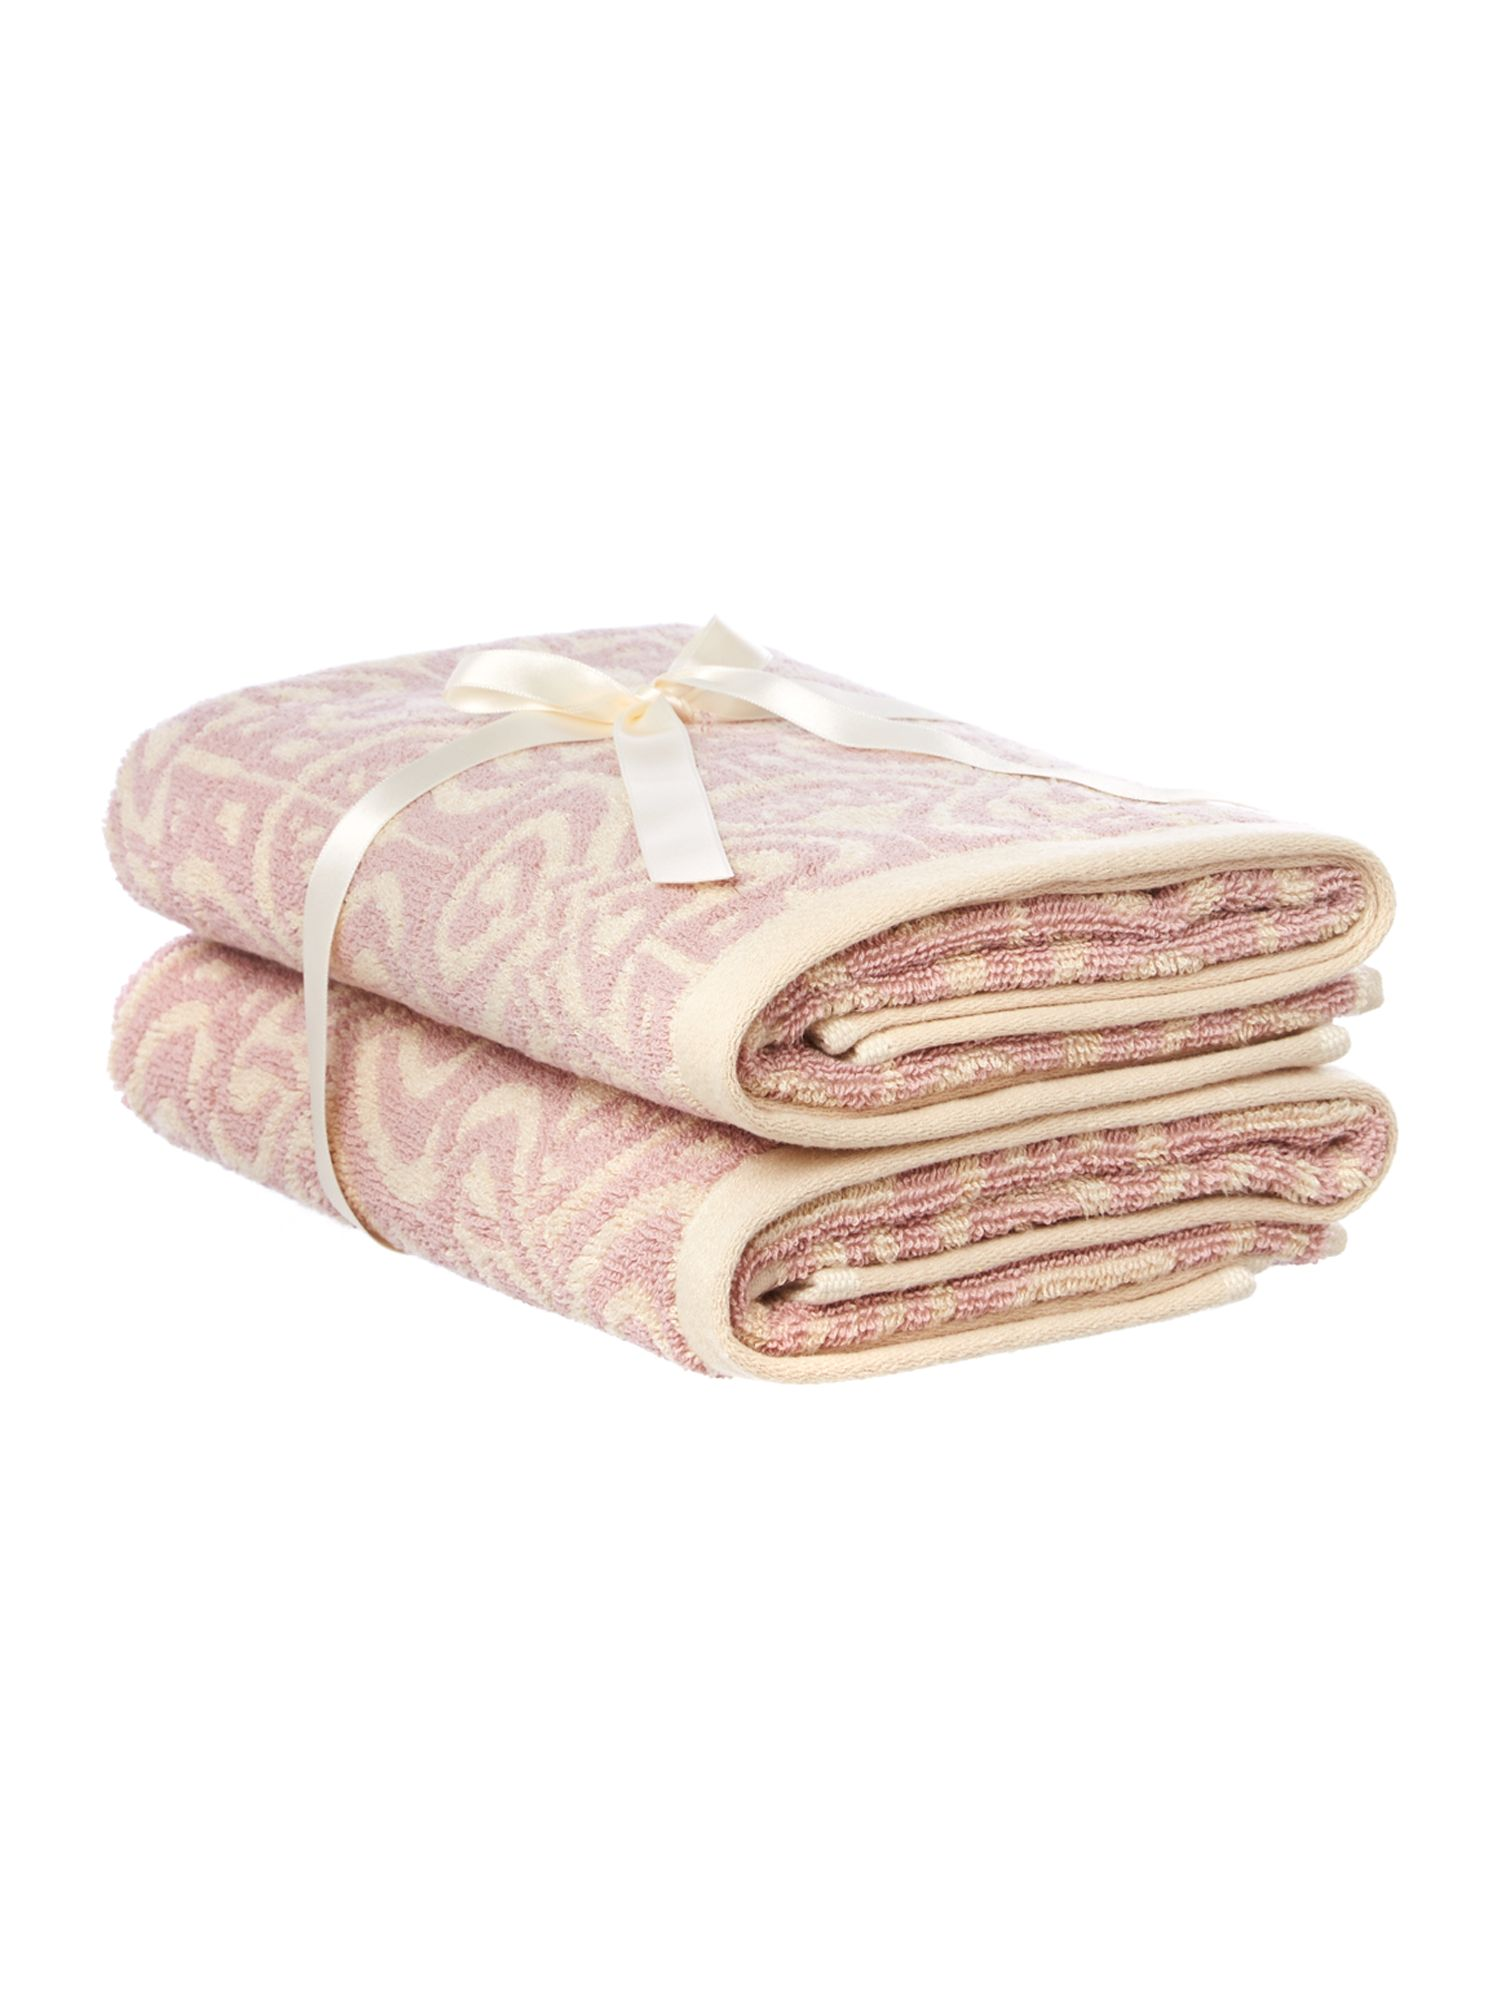 Blush jacquard pack of 2 hand towels